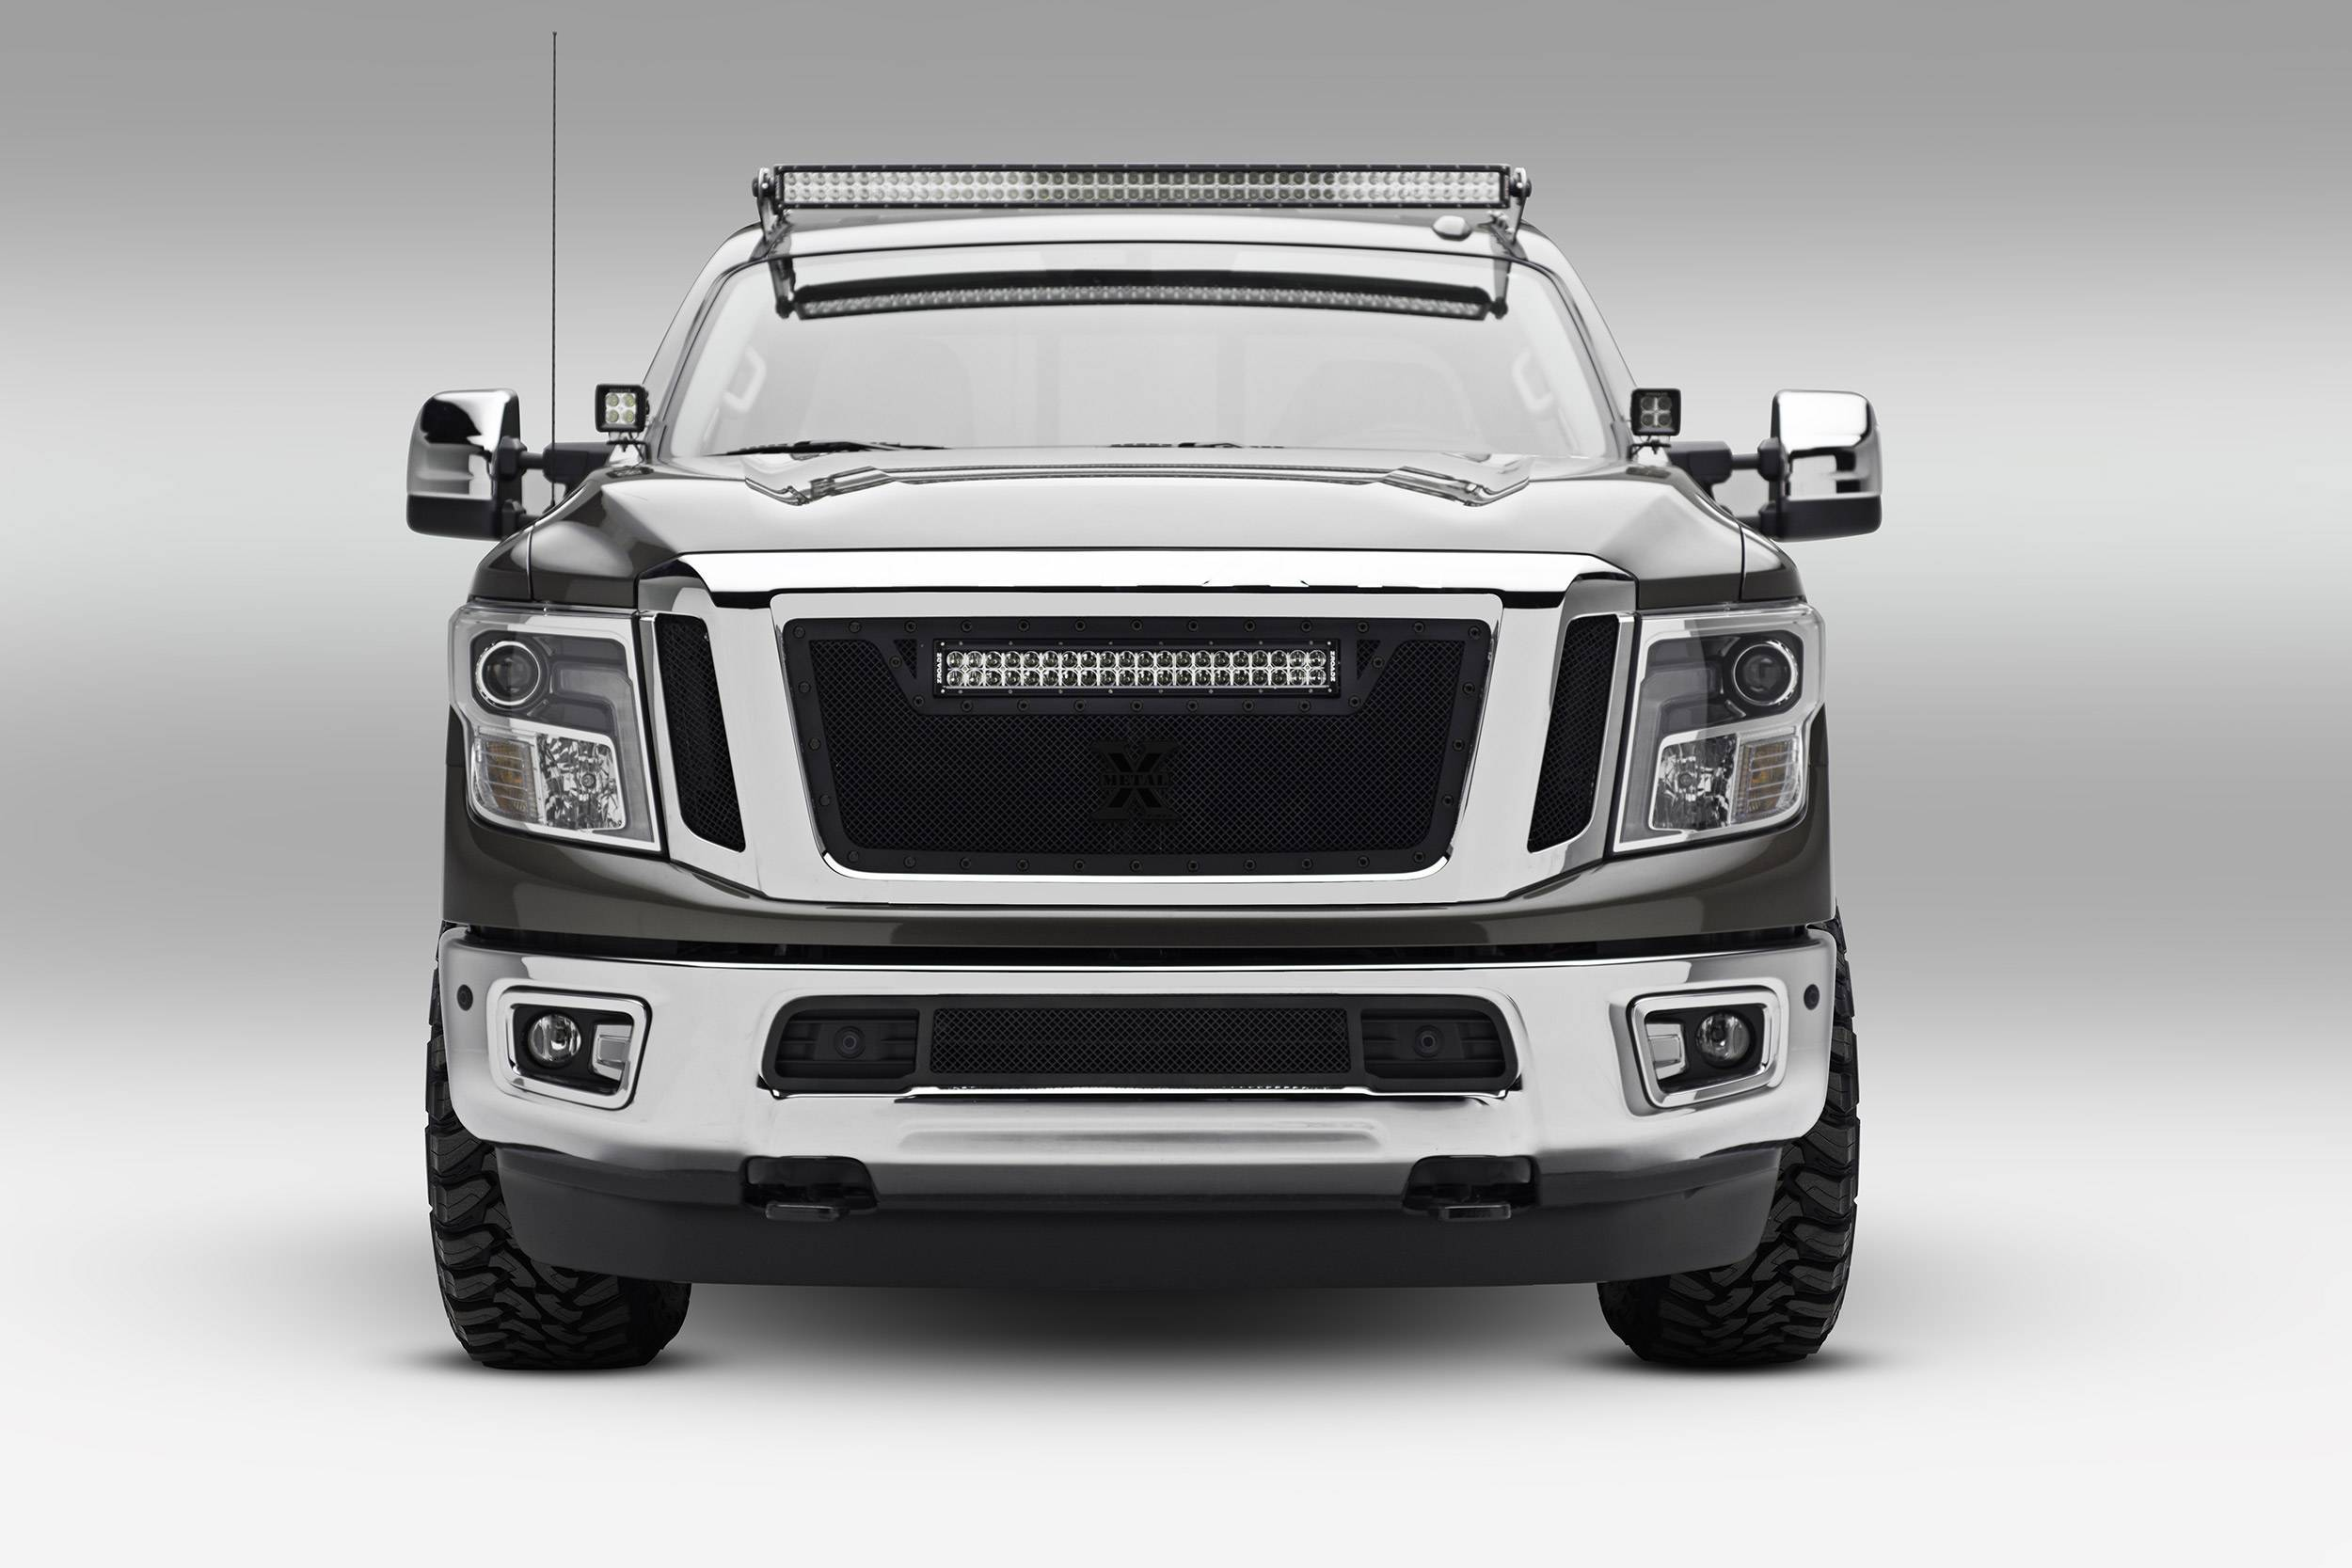 ZROADZ OFF ROAD PRODUCTS - 2016-2019 Nissan Titan Front Roof LED Bracket to mount (1) 50 Inch Staight LED Light Bar - PN #Z337181